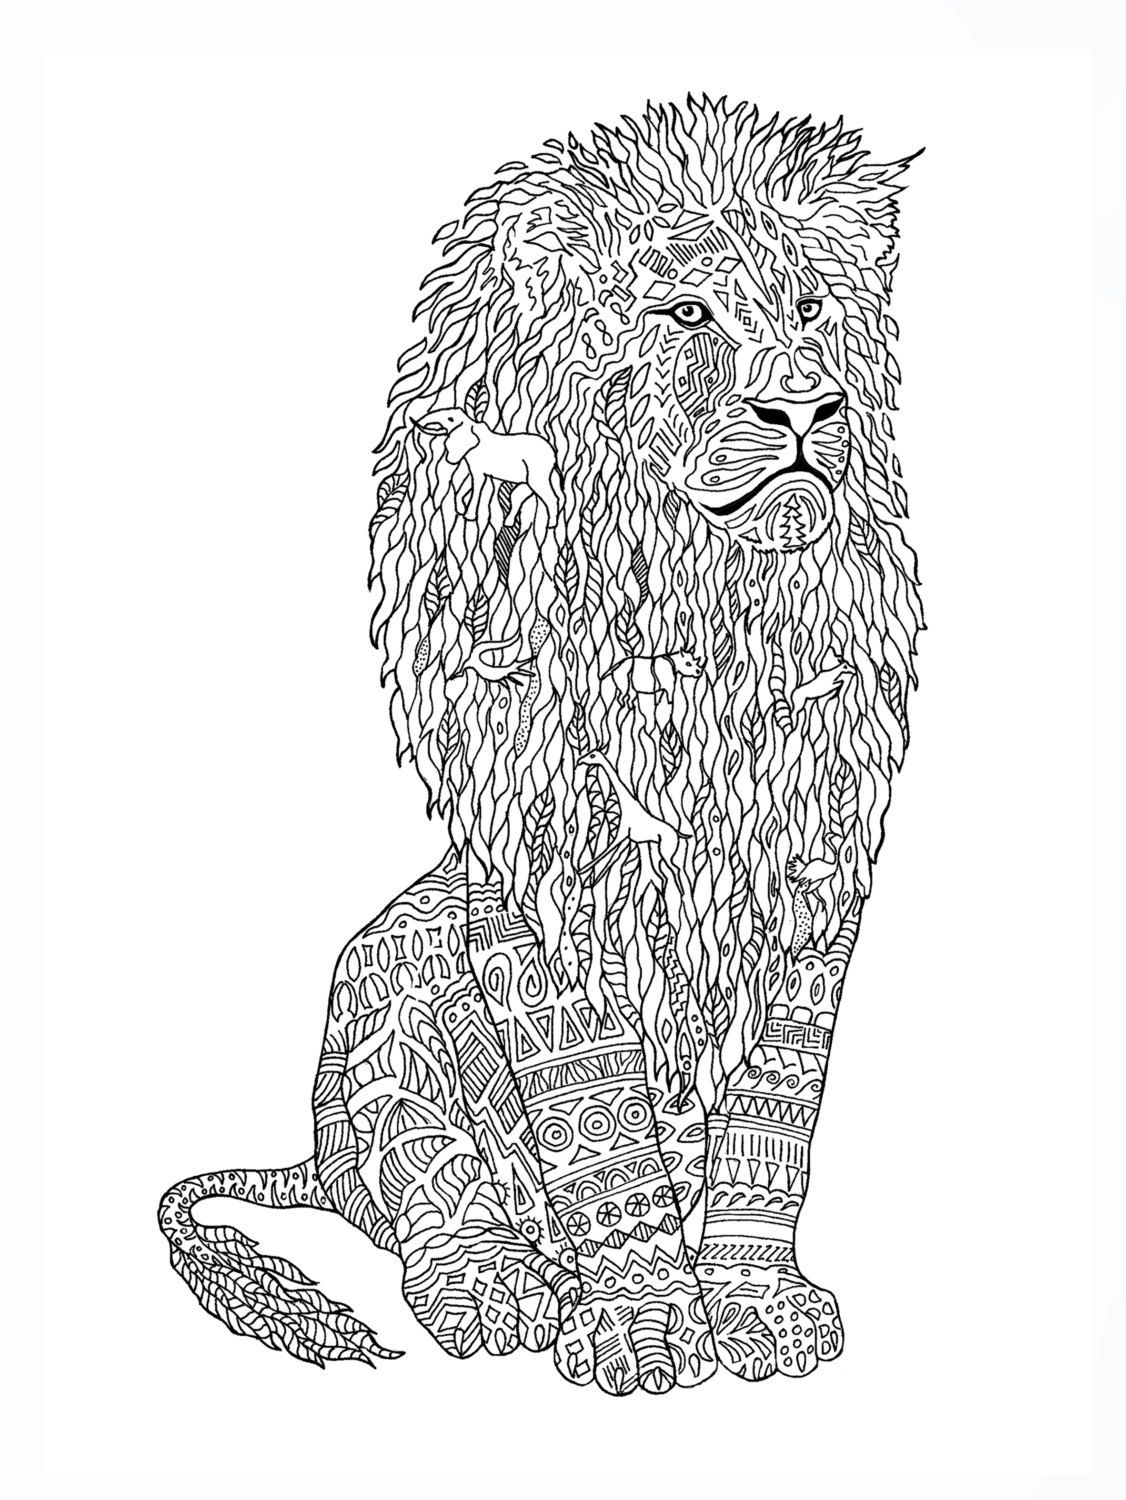 Lion coloring book page by colormefreelife on etsy coloring